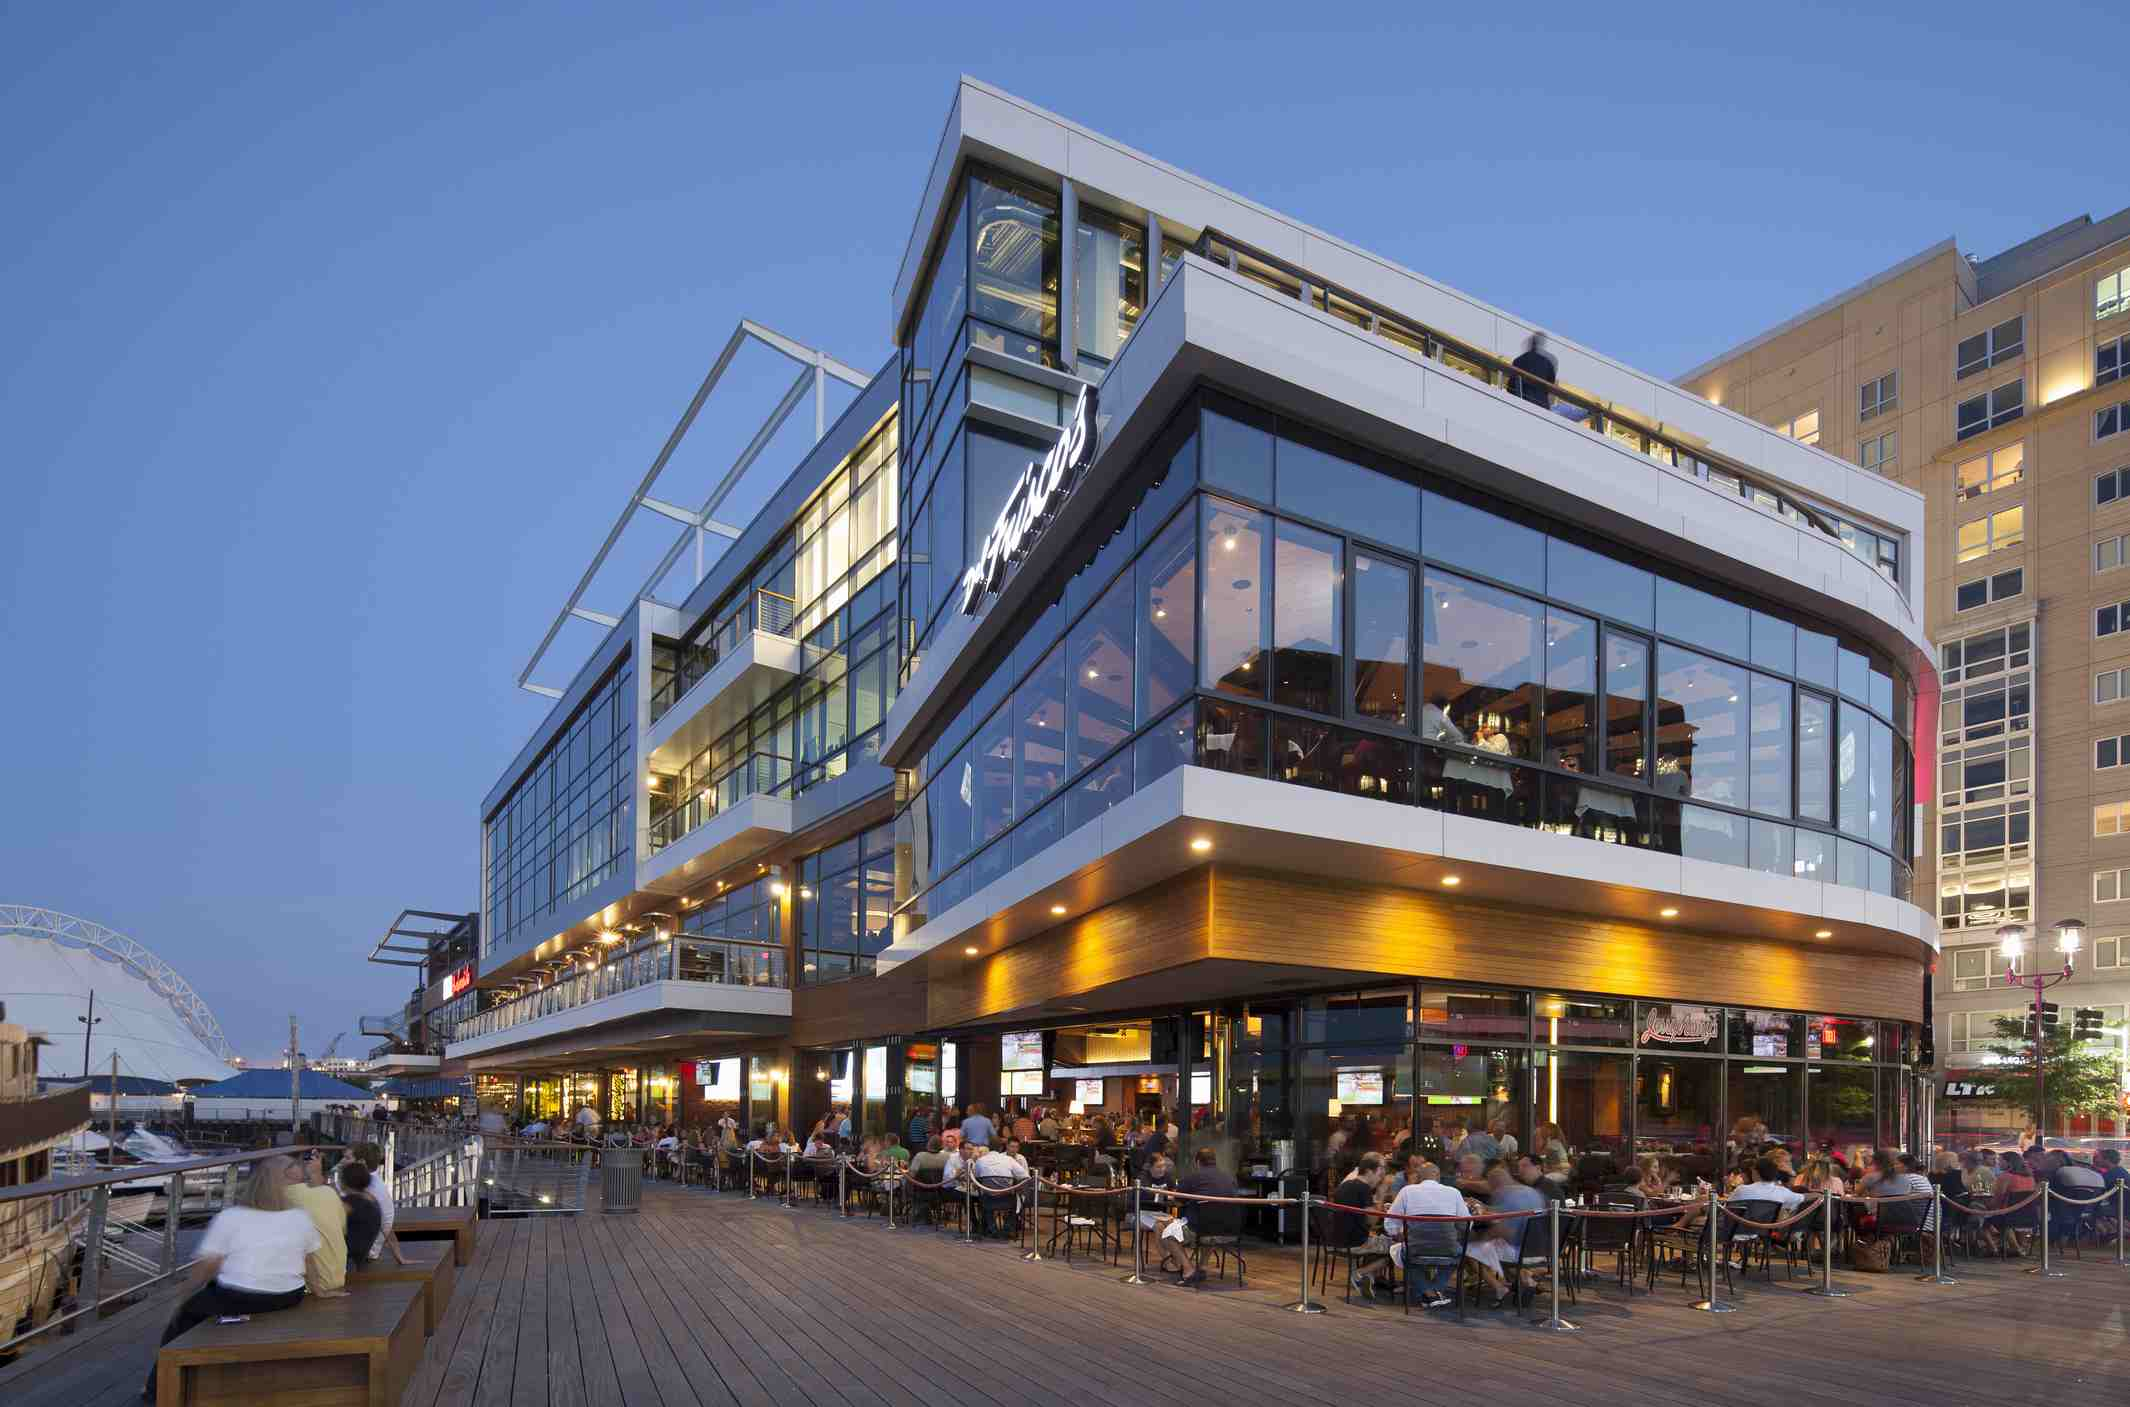 5 Restaurants In Boston With Easy Parking